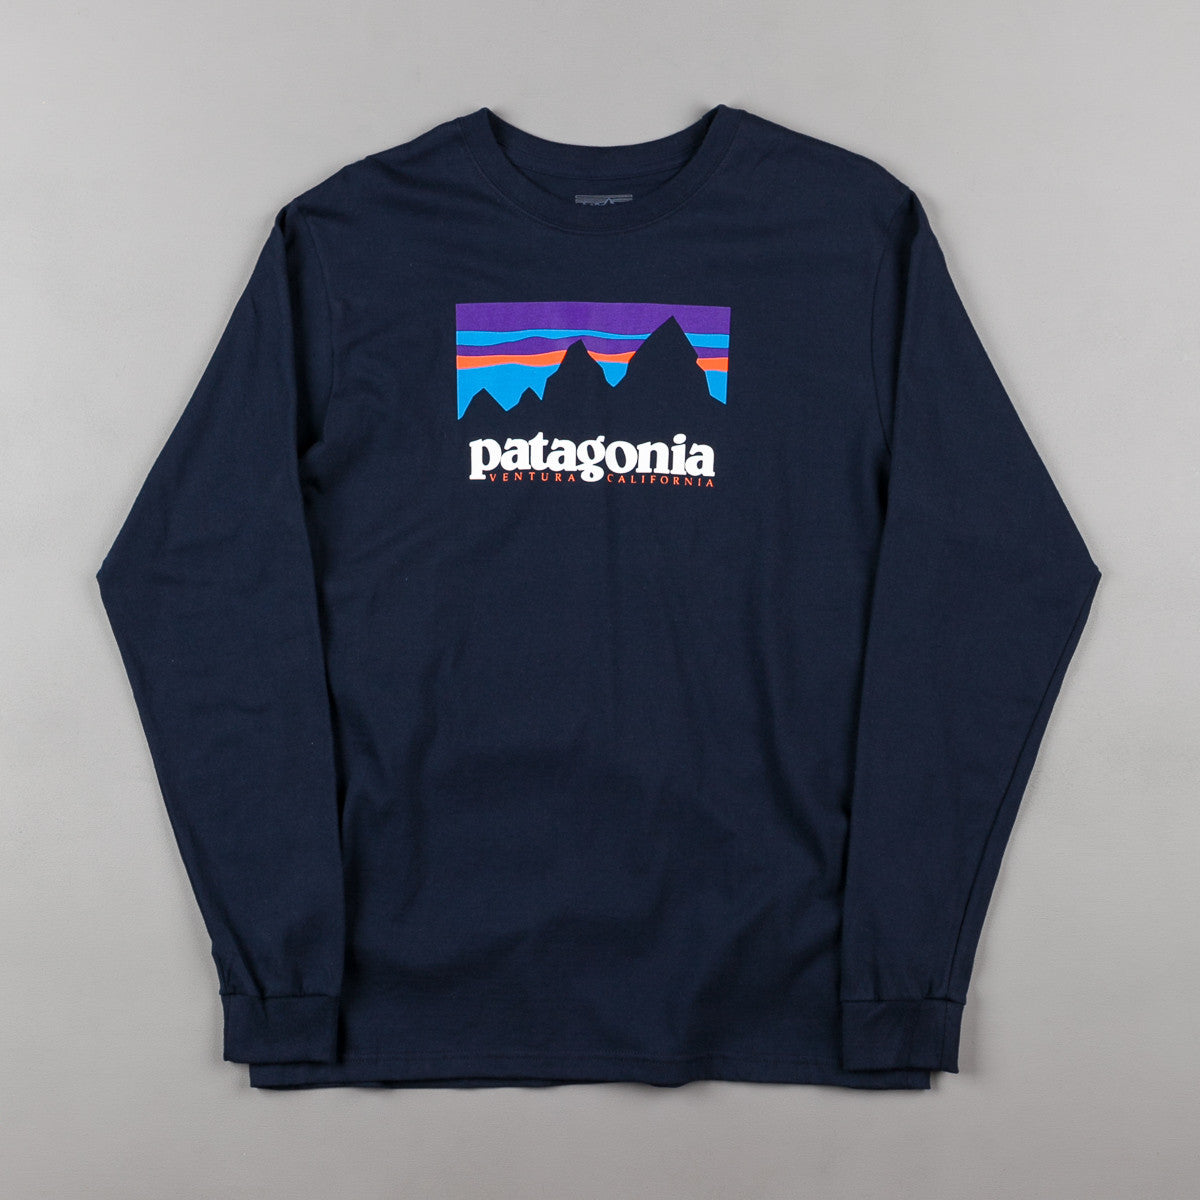 patagonia shop sticker long sleeve t shirt navy blue. Black Bedroom Furniture Sets. Home Design Ideas